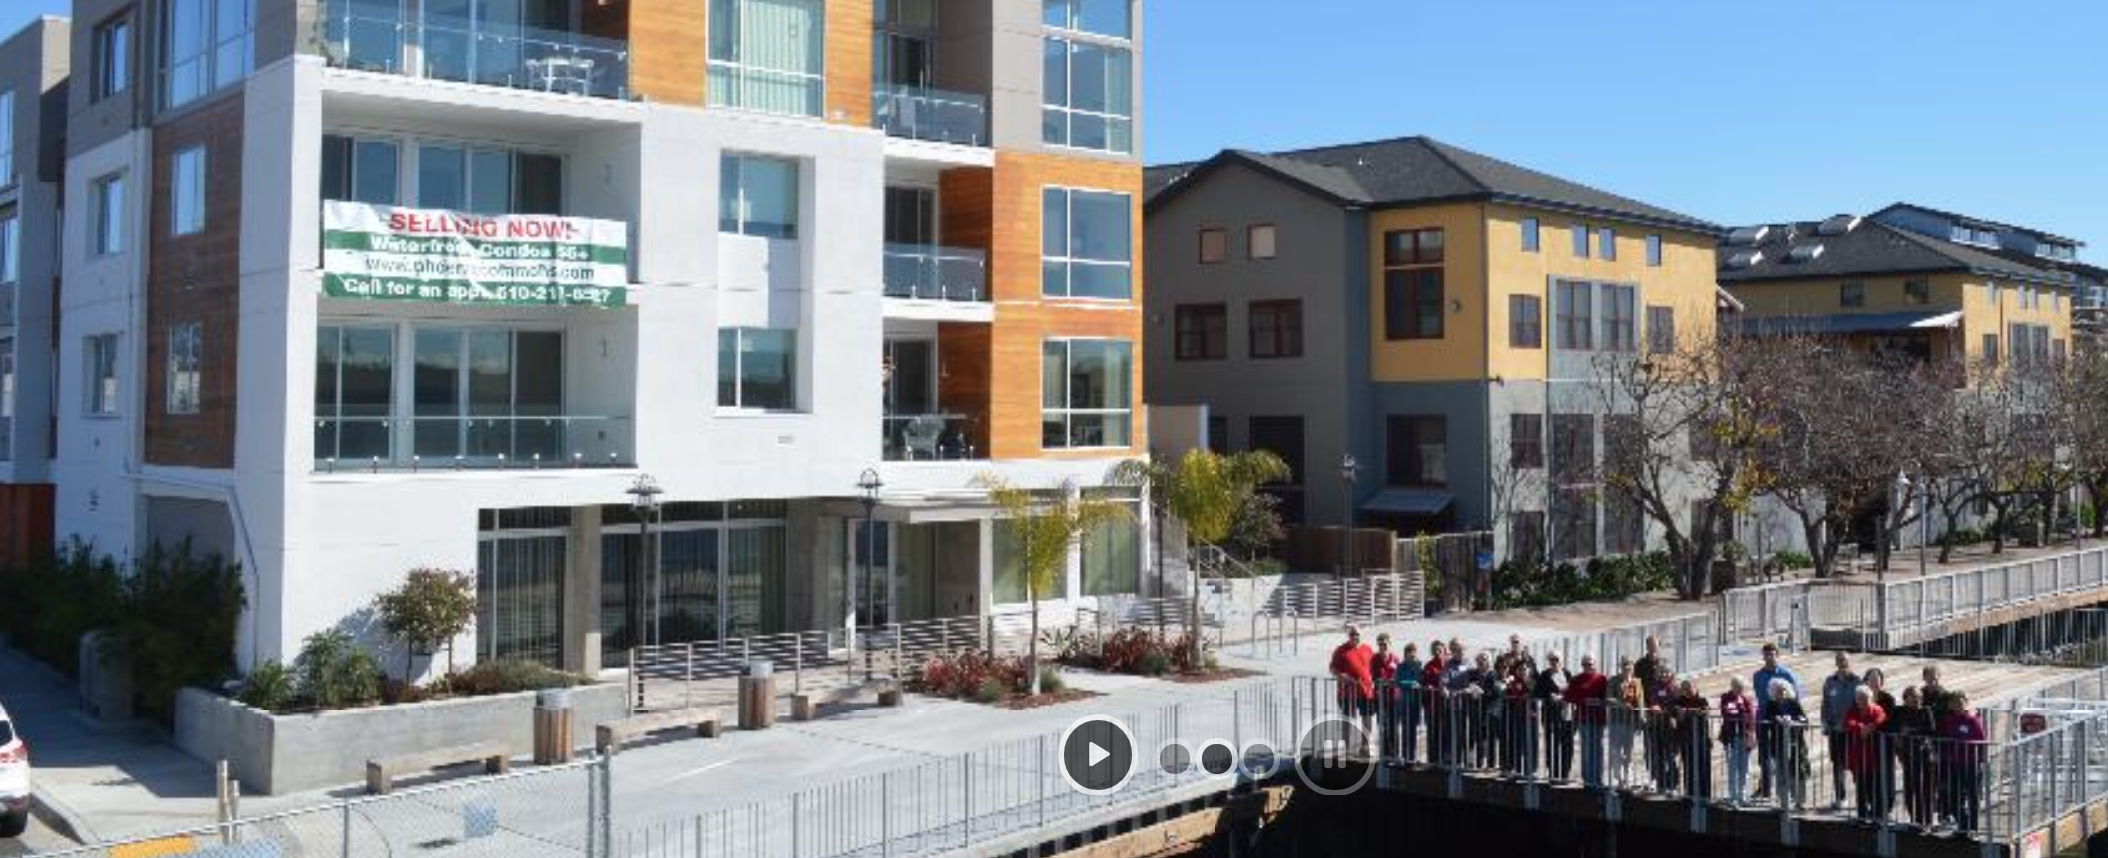 Phoenix Commons - cohousing across the water from Alameda